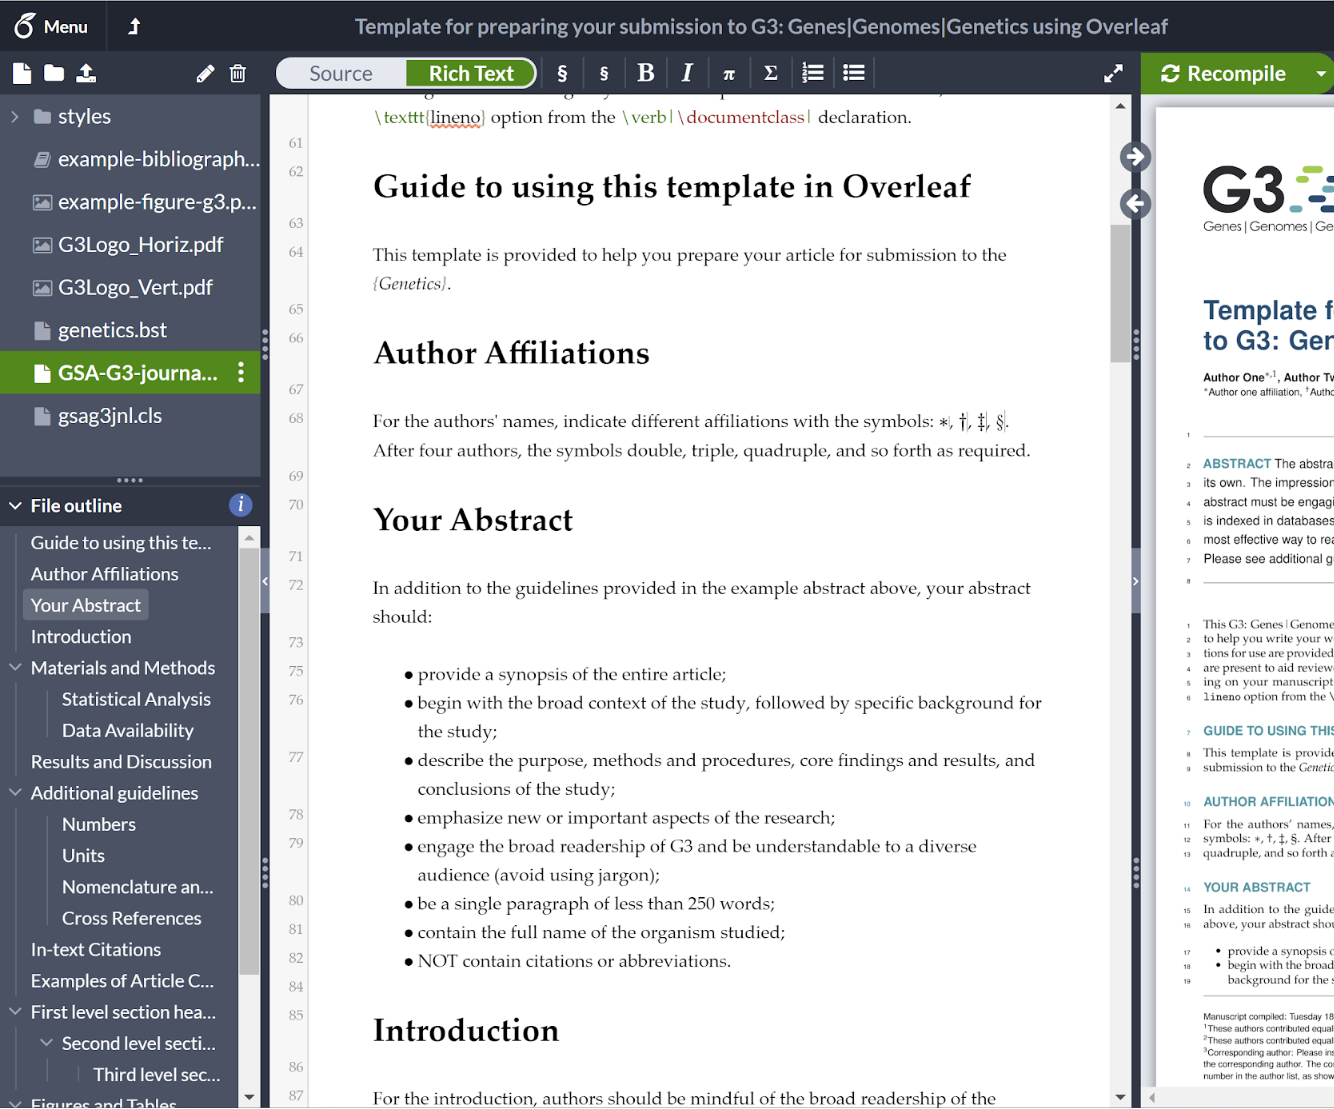 Overleaf File Outline - Research Paper Example